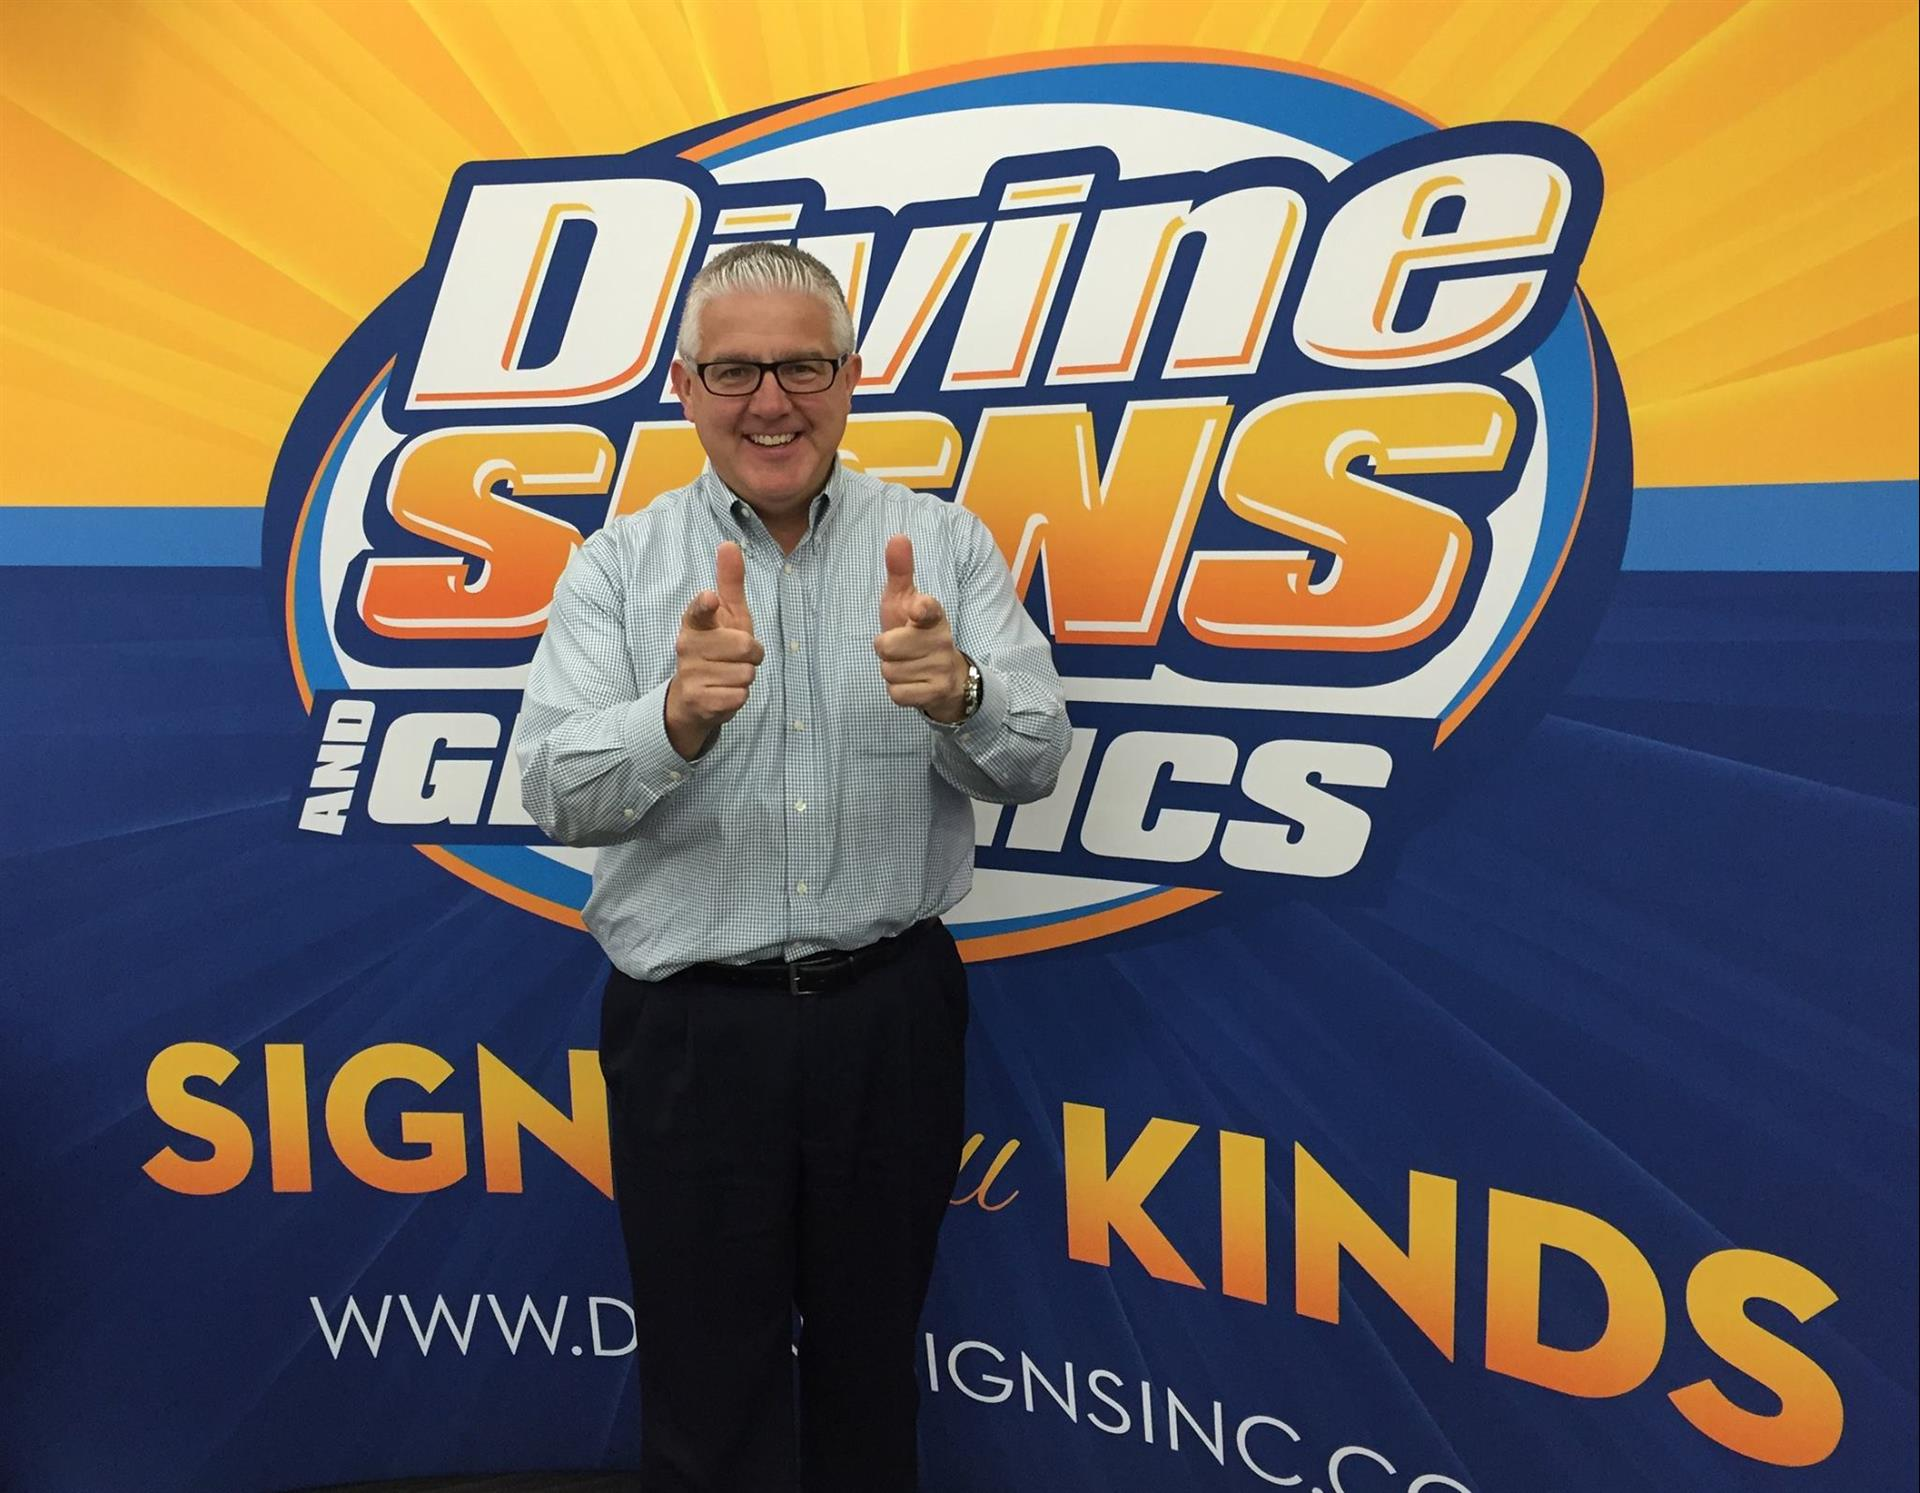 Meet the President of Divine Signs